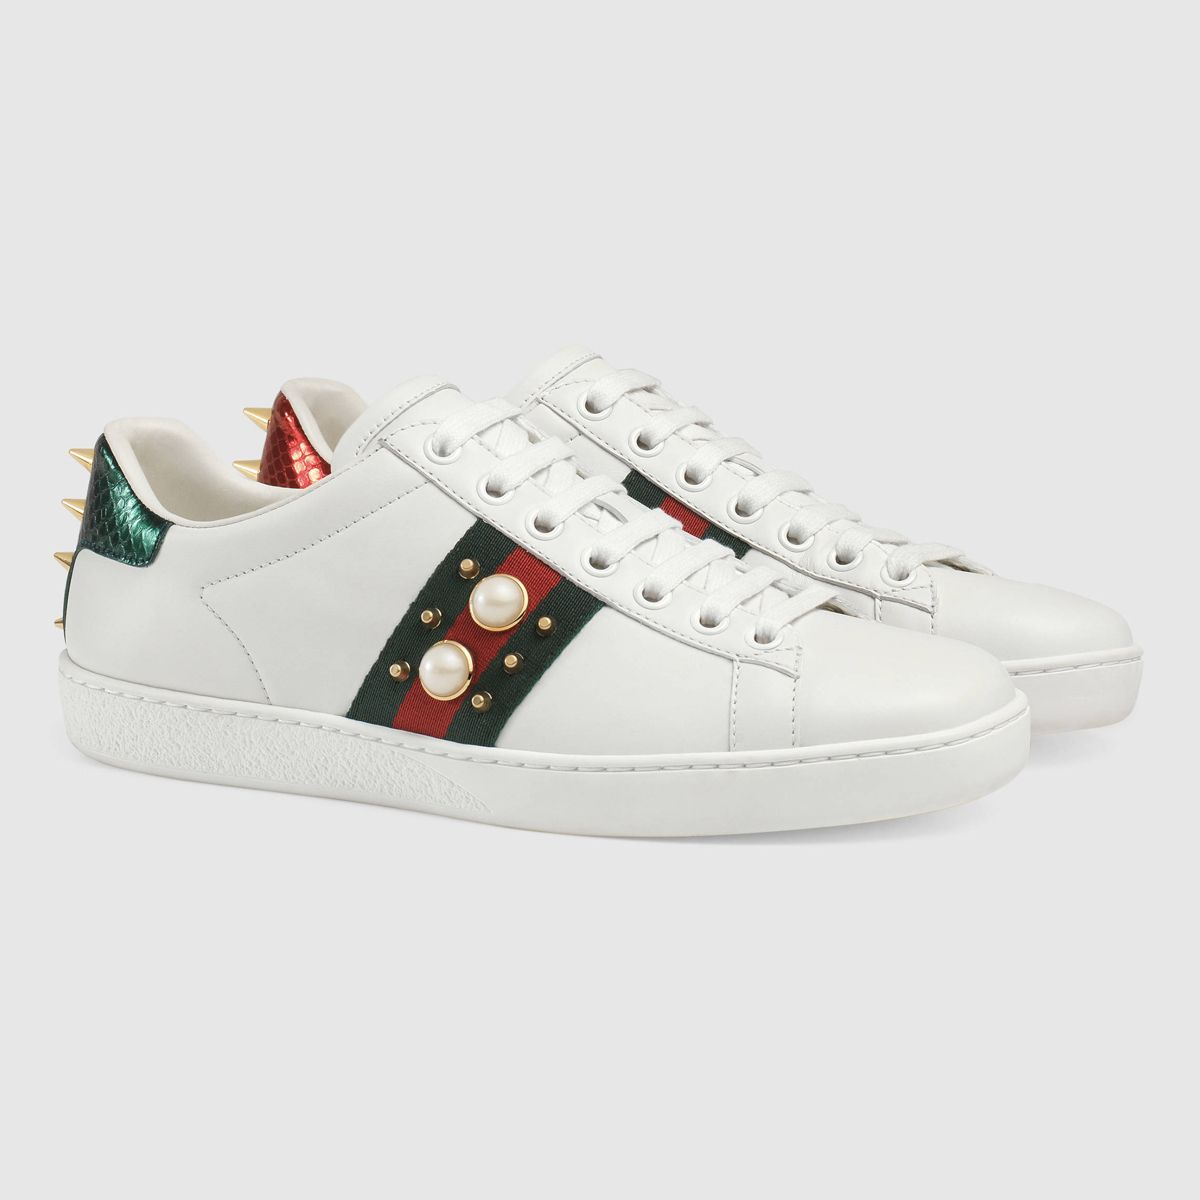 undefined 265463 1534504998719 product.1200x1200uc - 10 Extra Inexpensive Methods to Add Gucci Into Your Wardrobe